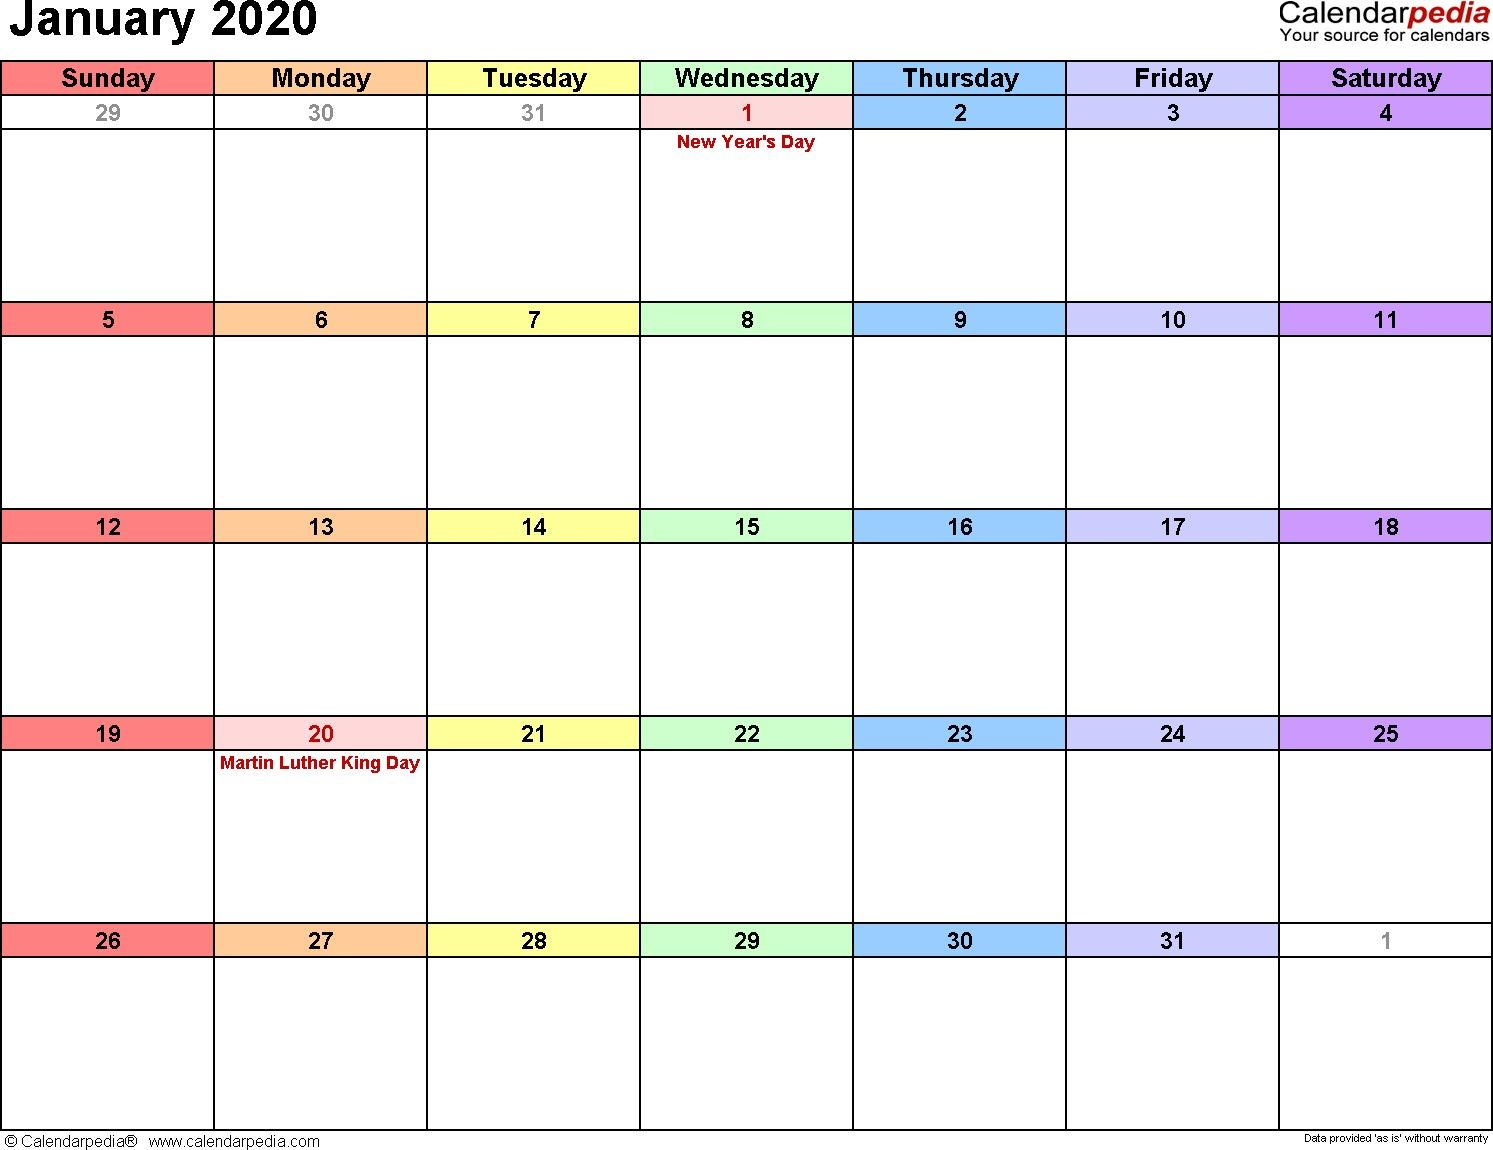 2020 January Calendar Printable – Delightful To The Website for Show Calendar For January 2020